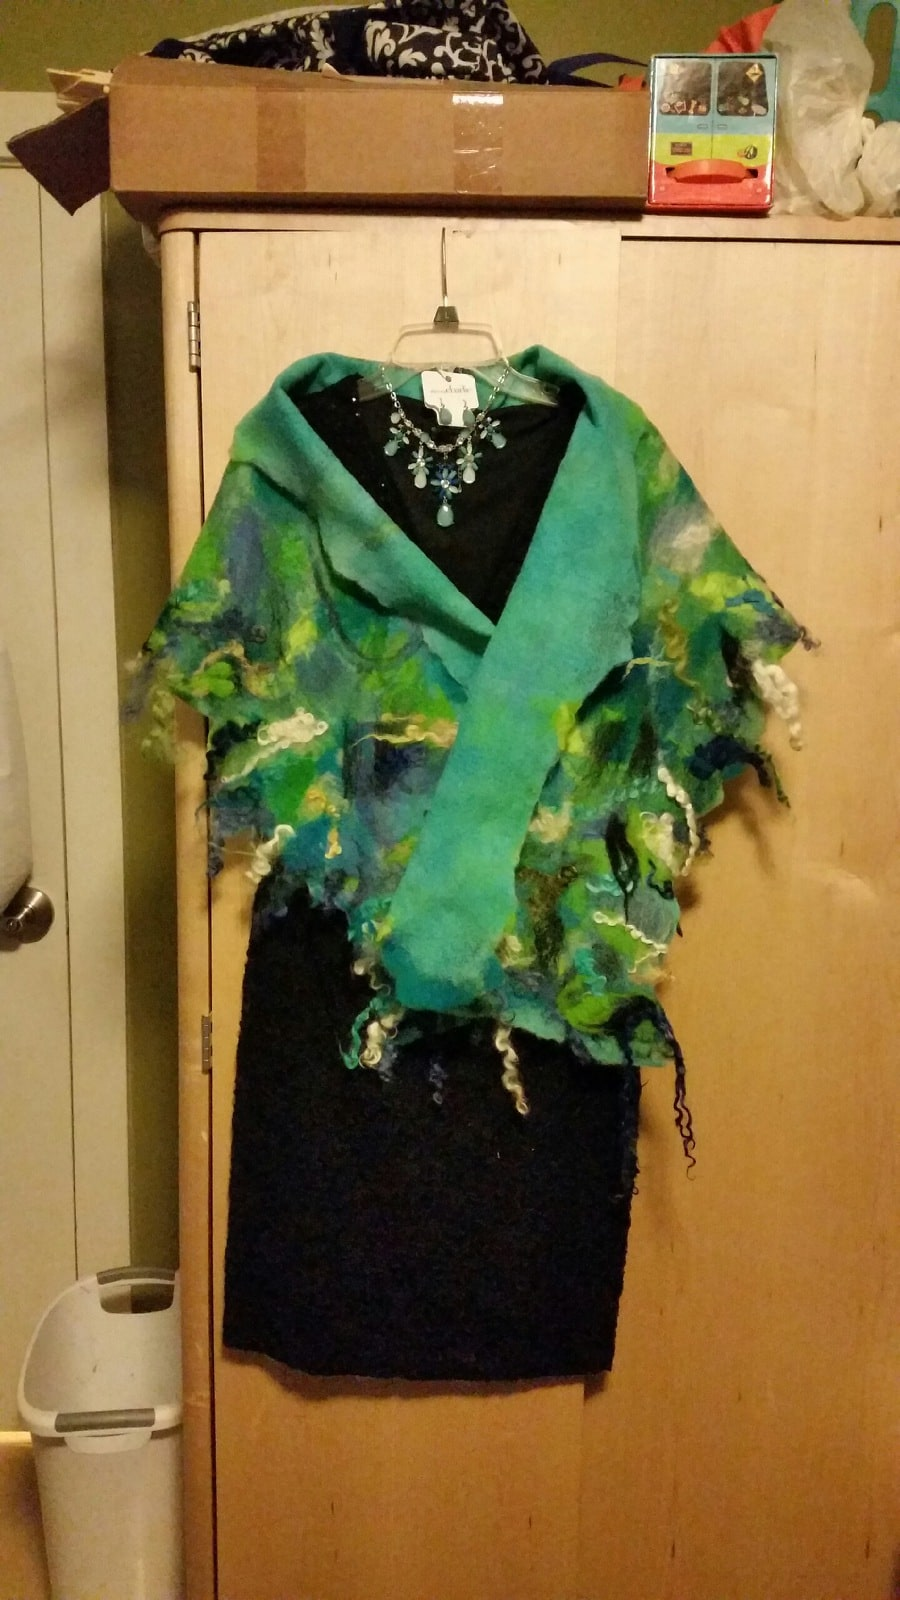 This is a wet and needle felted shawl that was inspired by ocean colors.  The locks around the edge remind me of the waves at the beach.